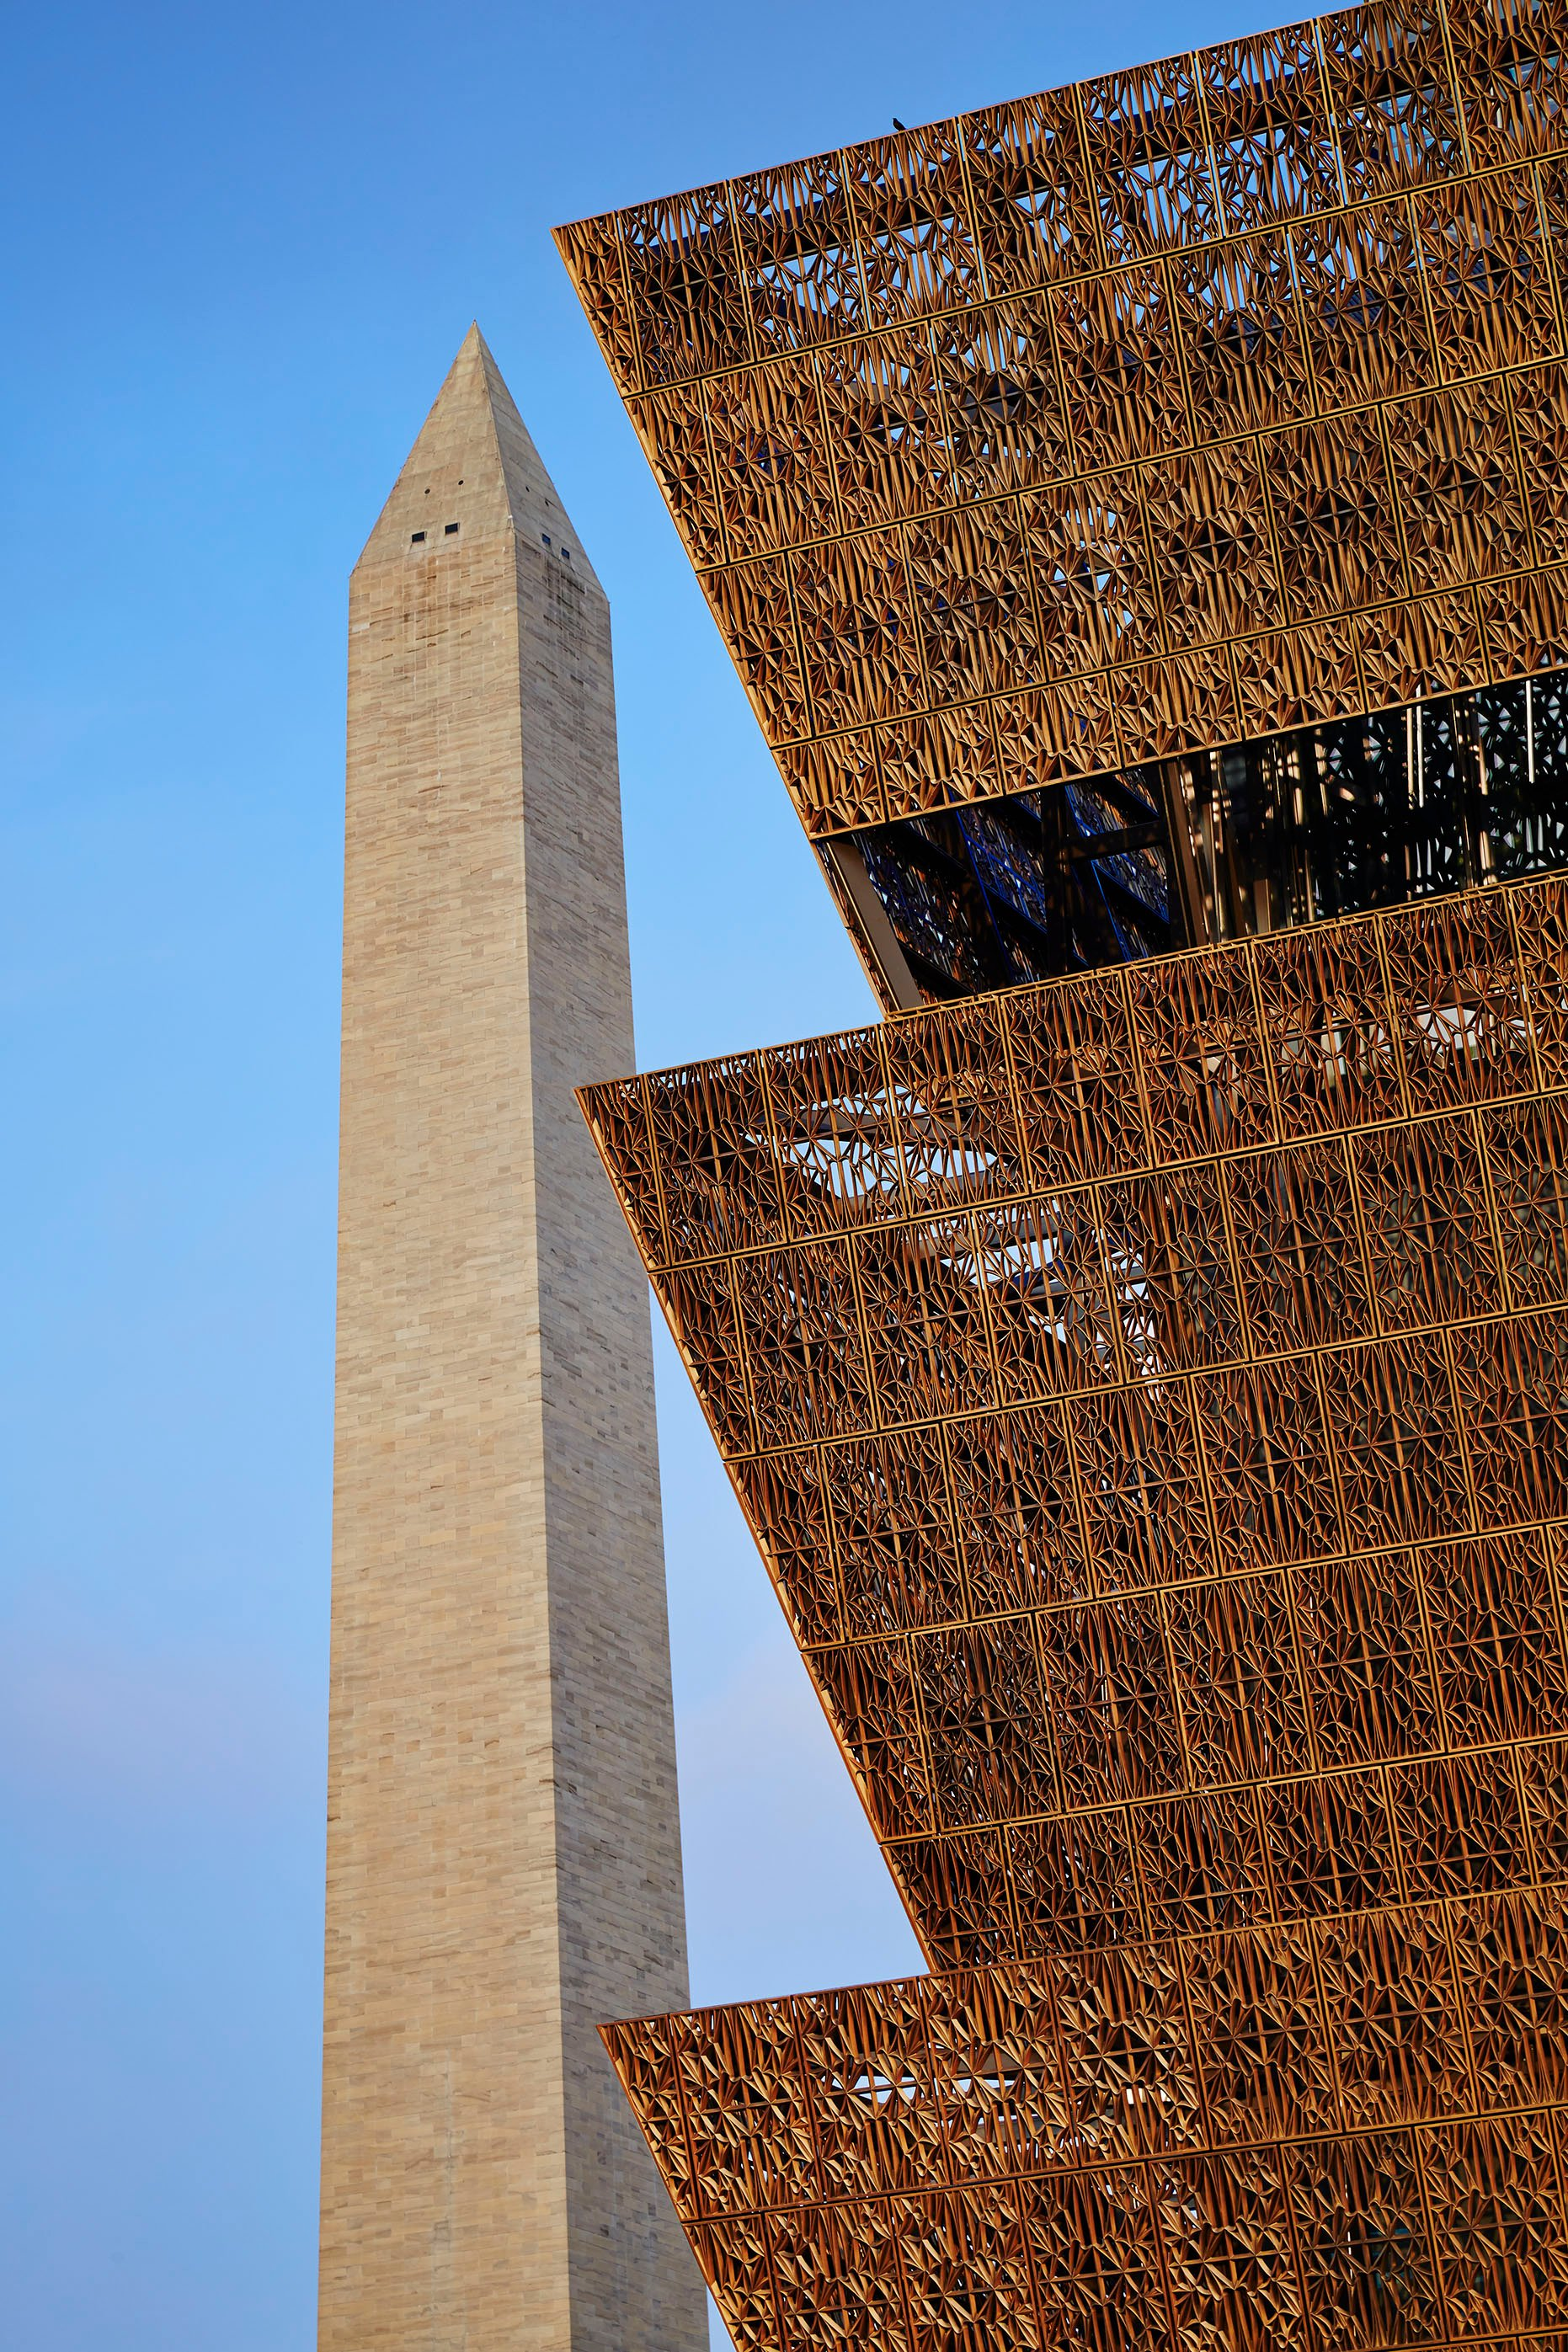 Adjaye Associates. Smithsonian National Museum of African American History and Culture, Washington D.C.,current. Courtesy of Adjaye Associates. Photo by Steve Hall, Hedrich Blessing.